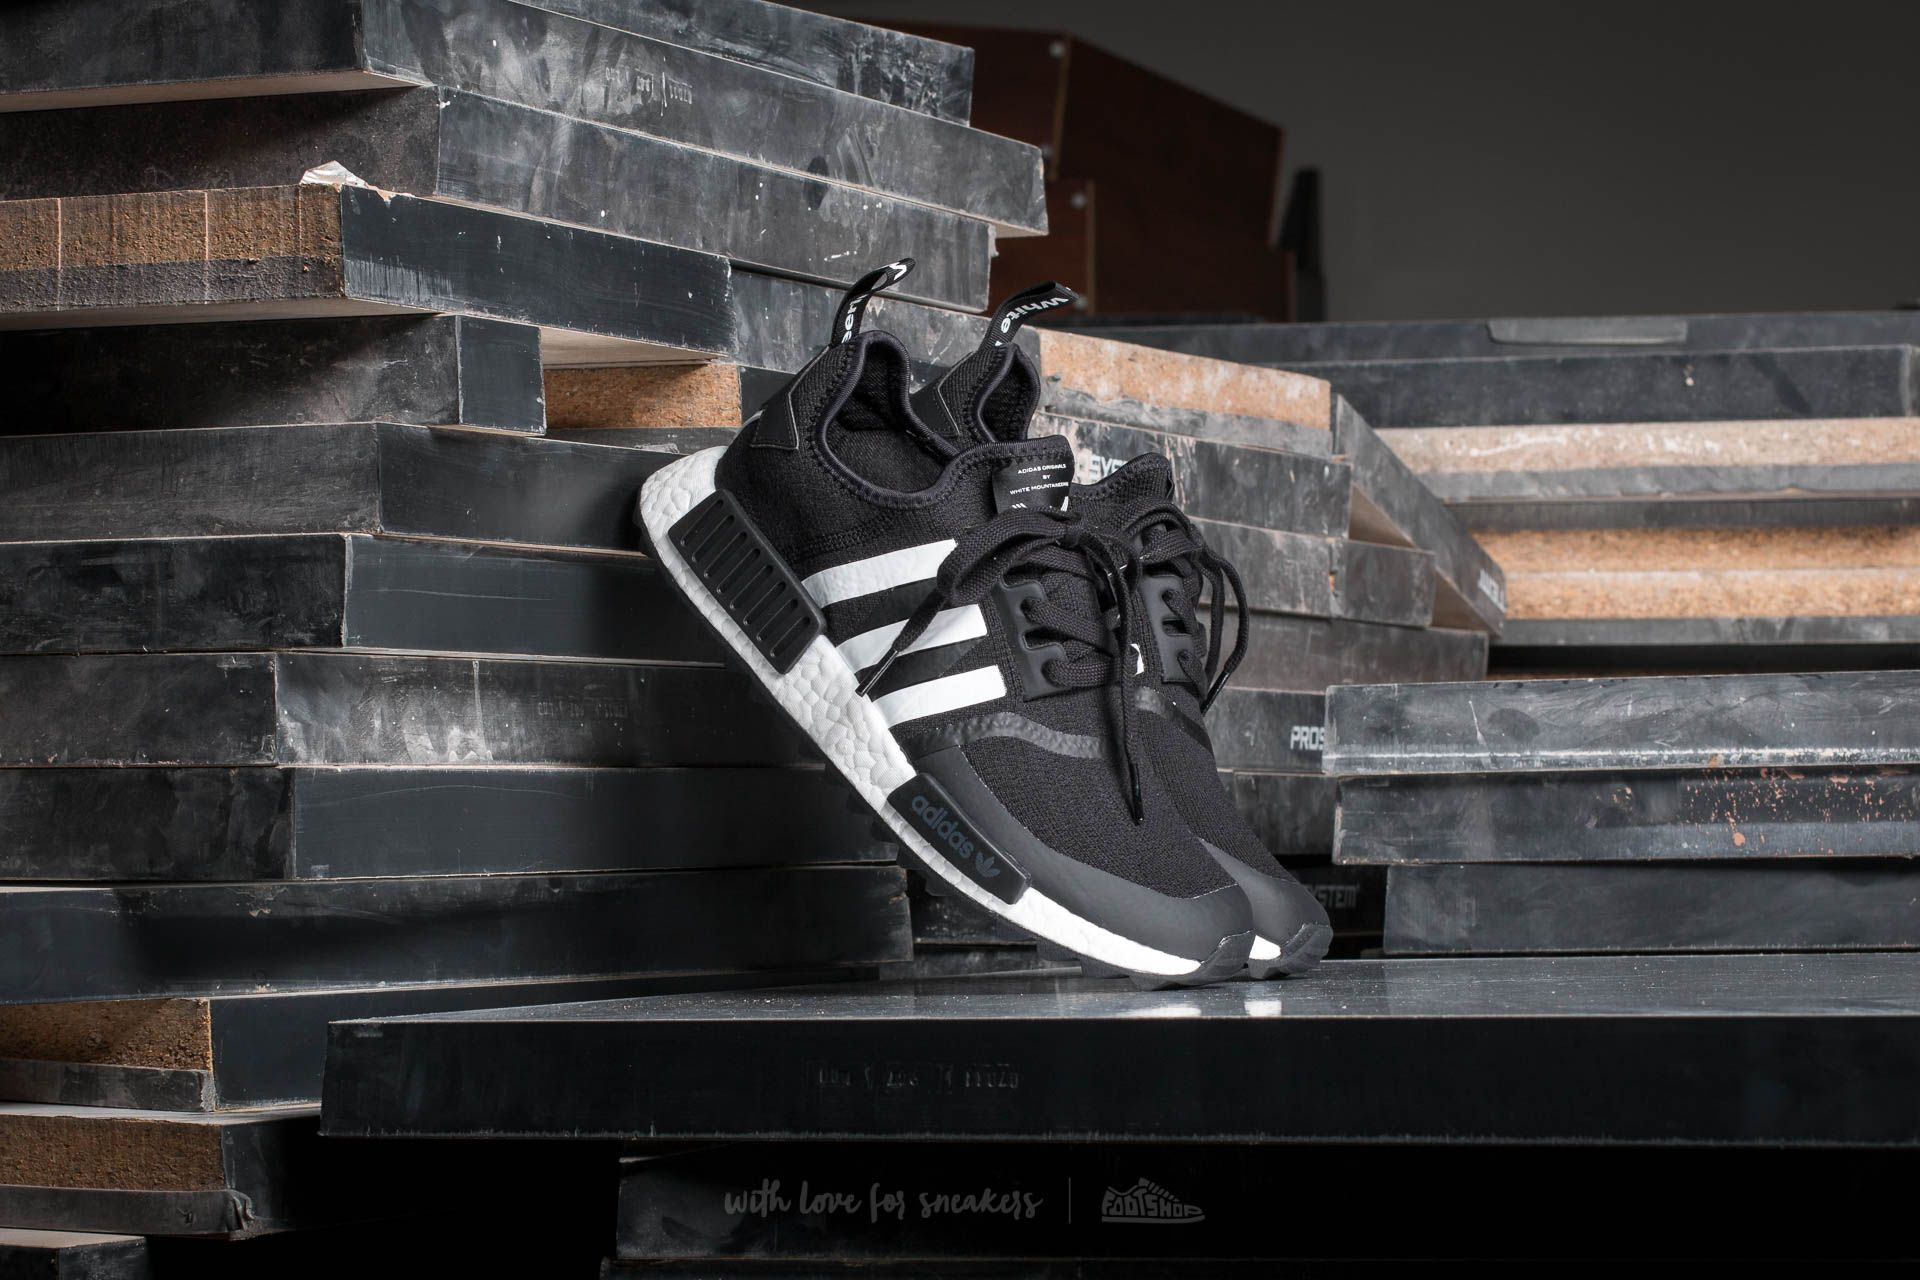 235b9dff9 adidas White Mountaineering NMD Trail Primeknit Core Black/ Ftw ...